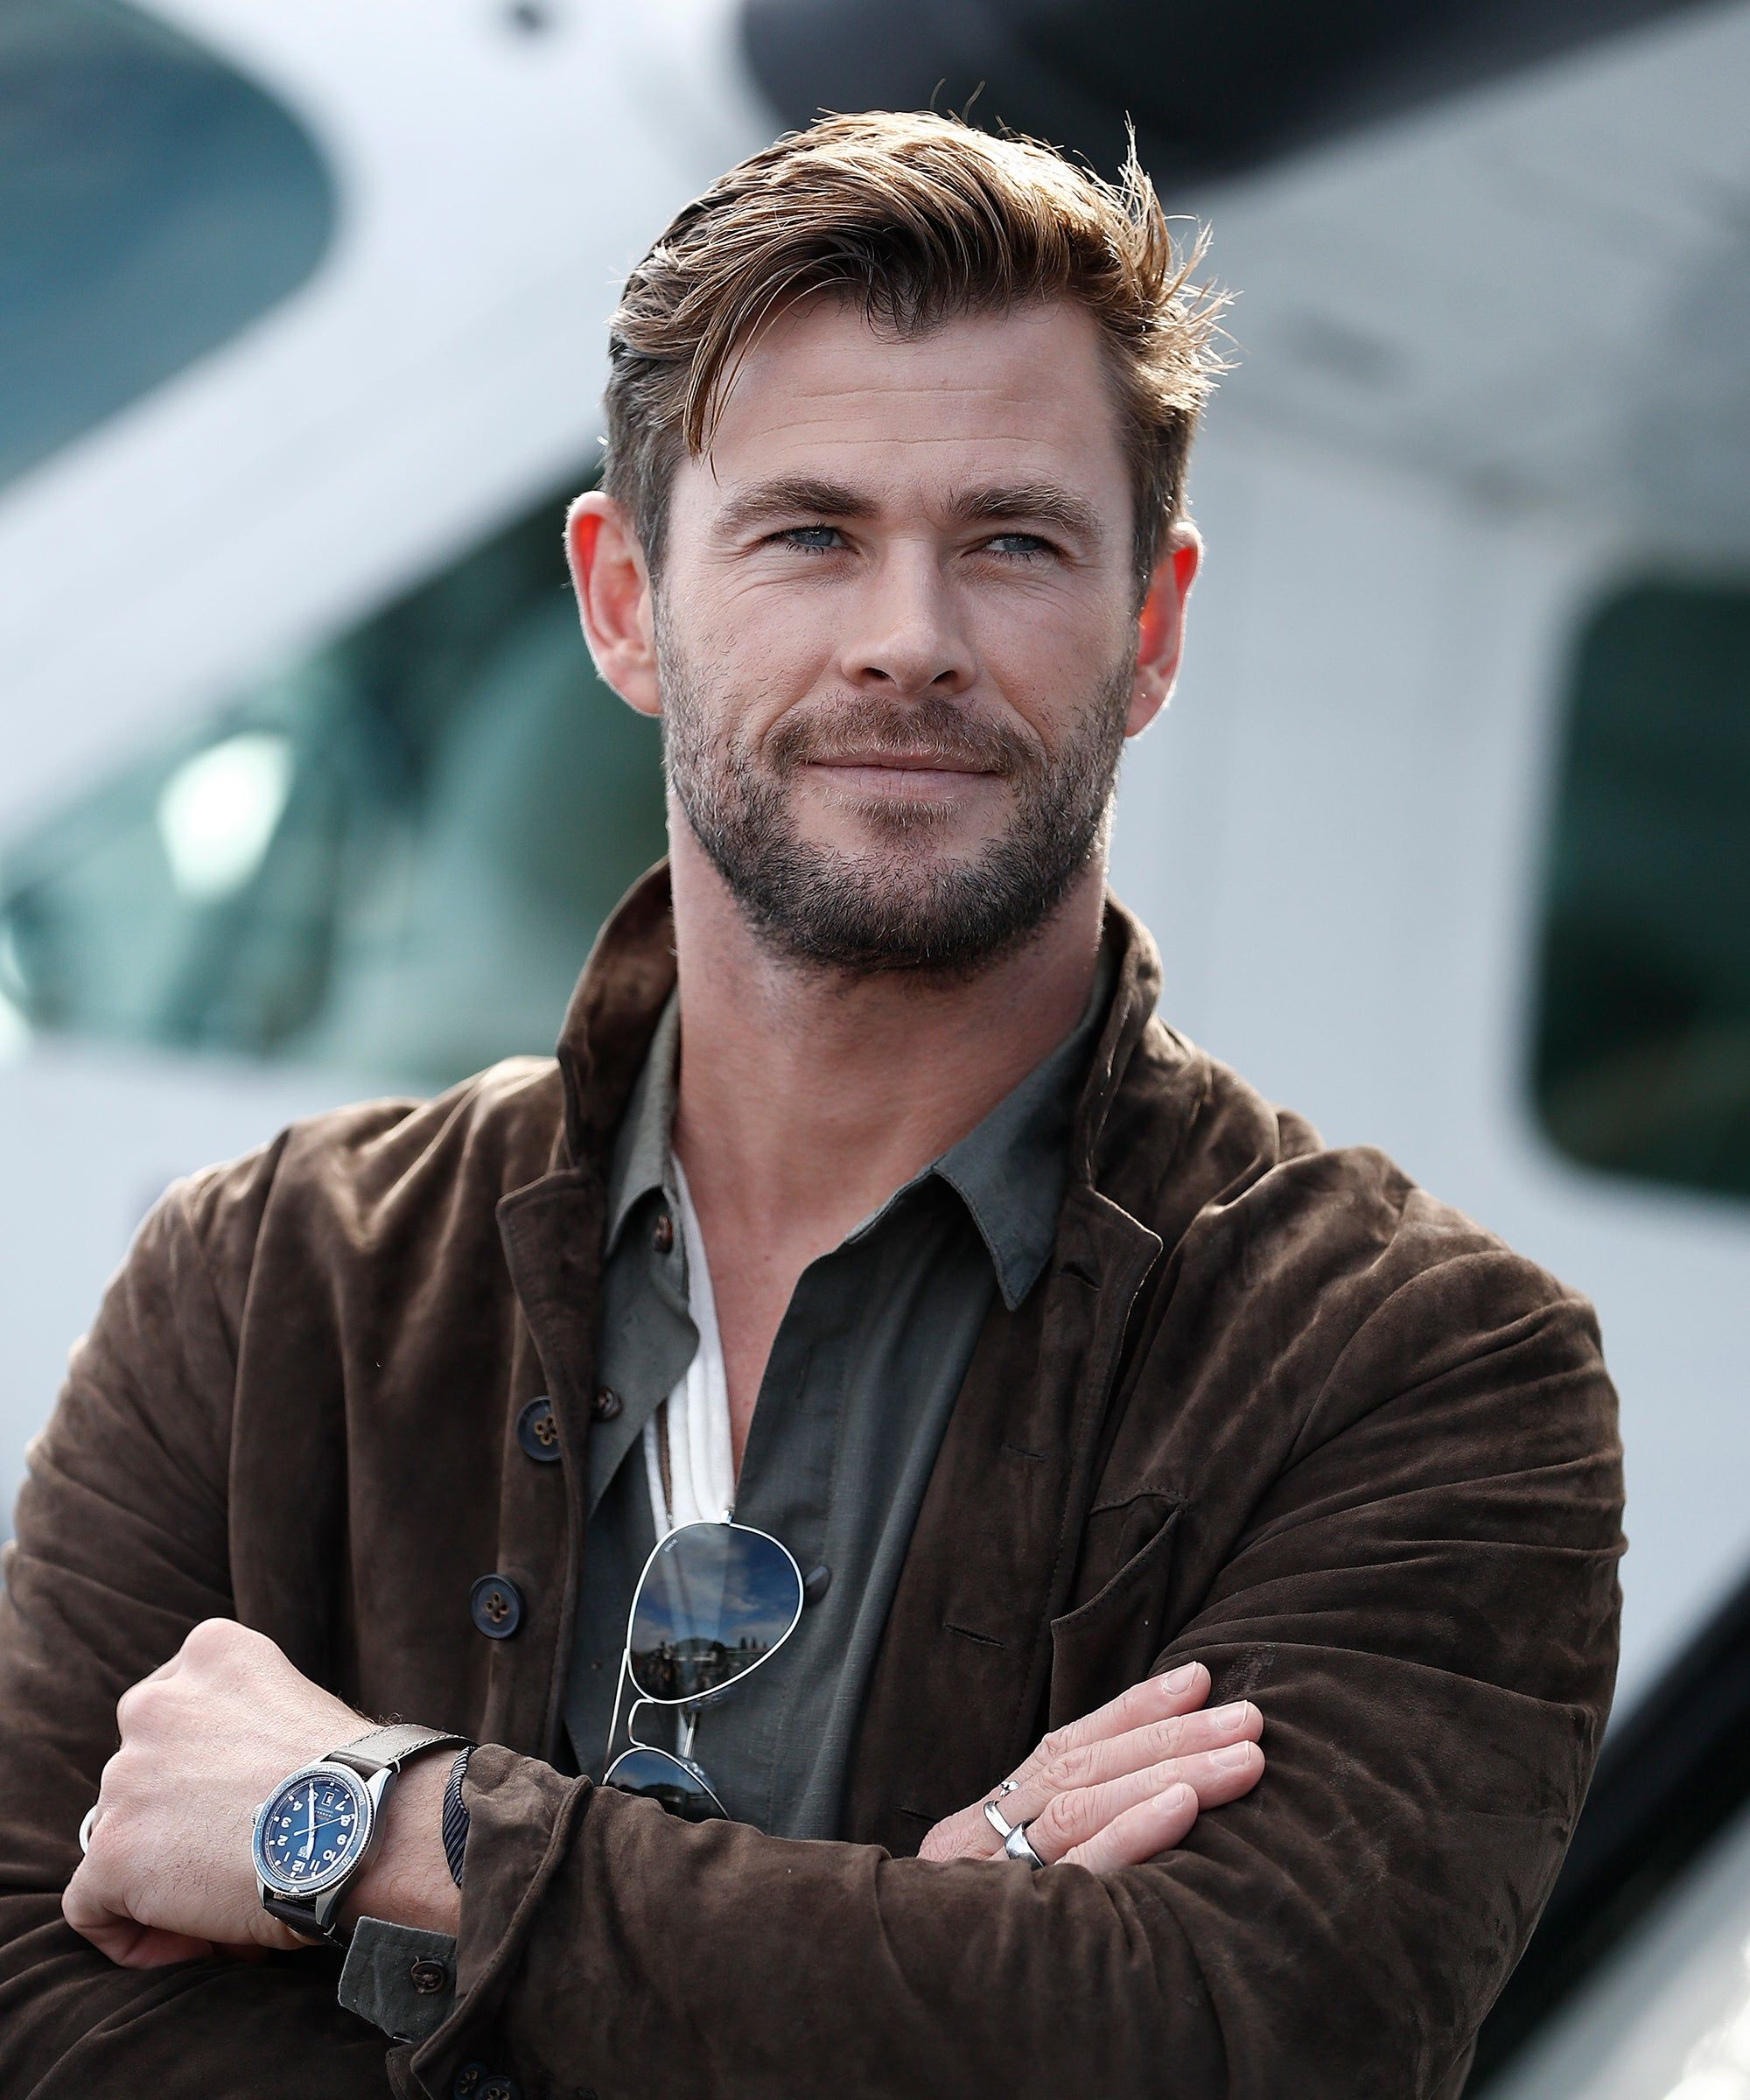 Chris Hemsworth God Of Thirst Traps Doesn 8217 T Know He 8217 S One Either Refinery29 Https Www Refinery Chris Hemsworth Hair Chris Hemsworth Hemsworth